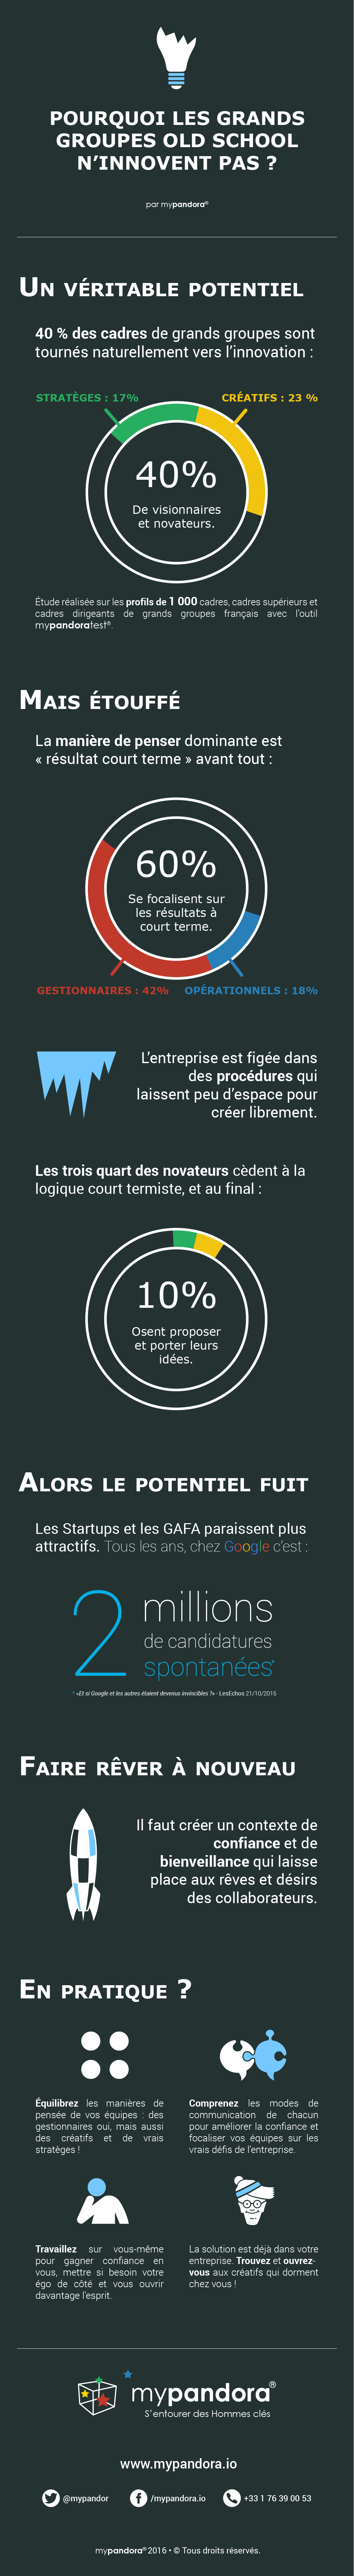 Infographie : Pourquoi les grands groupes old school n'innovent pas ?